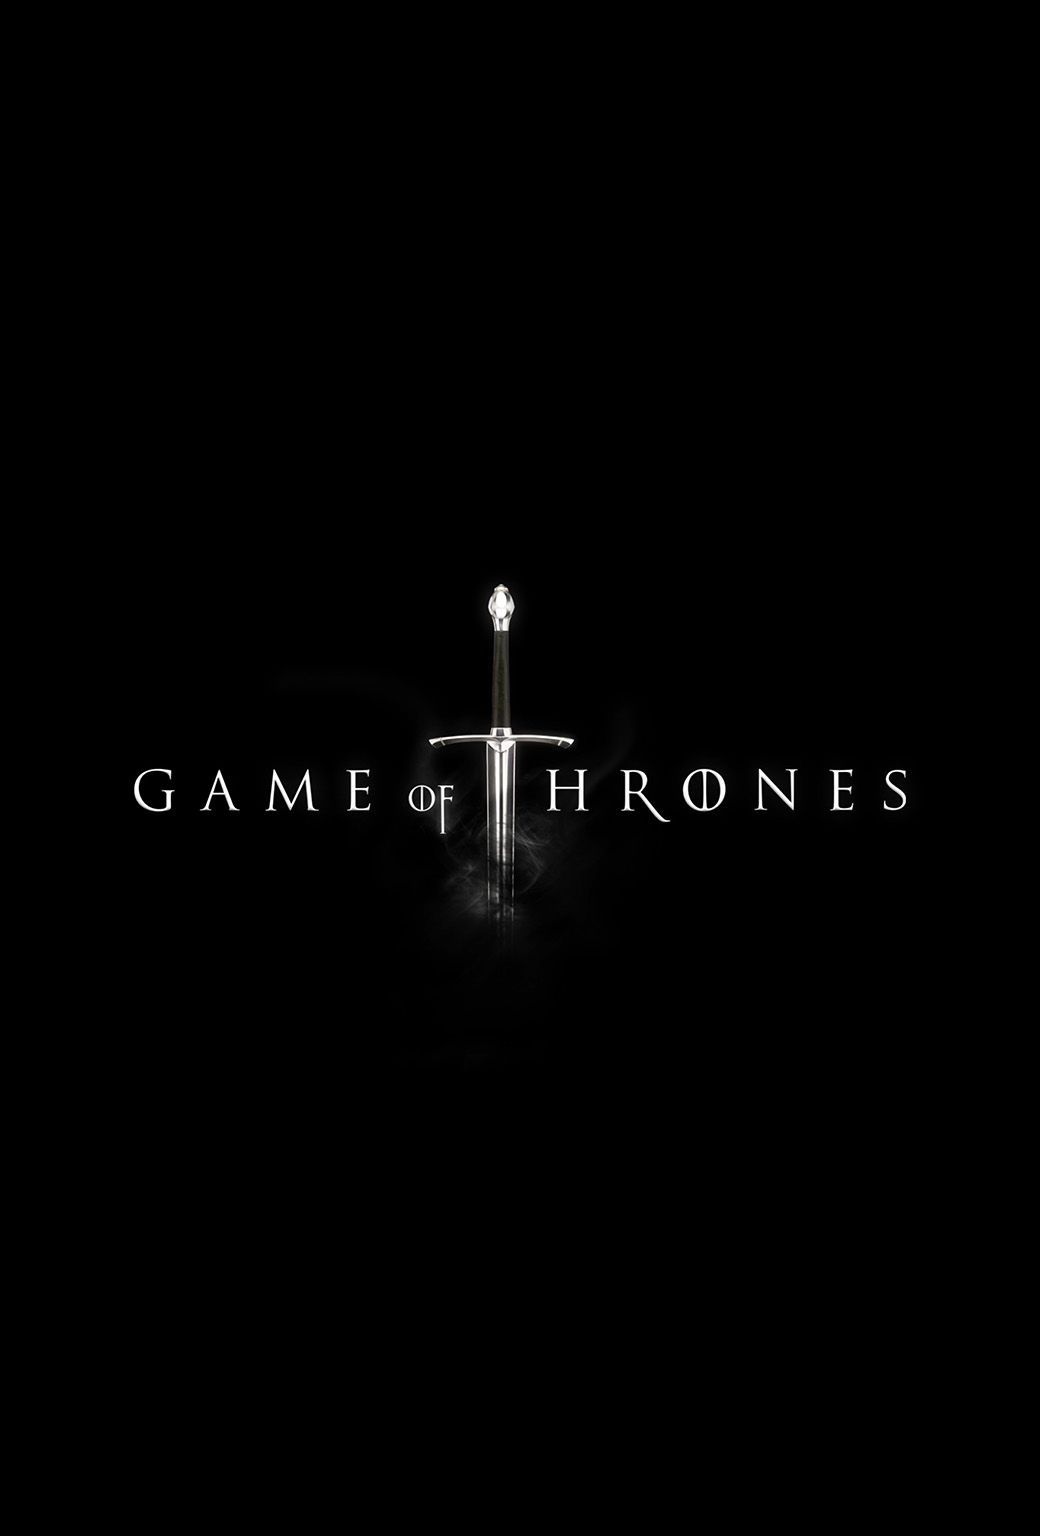 Fonds D Ecran Game Of Thrones Pour Iphone Ipod Et Ipad